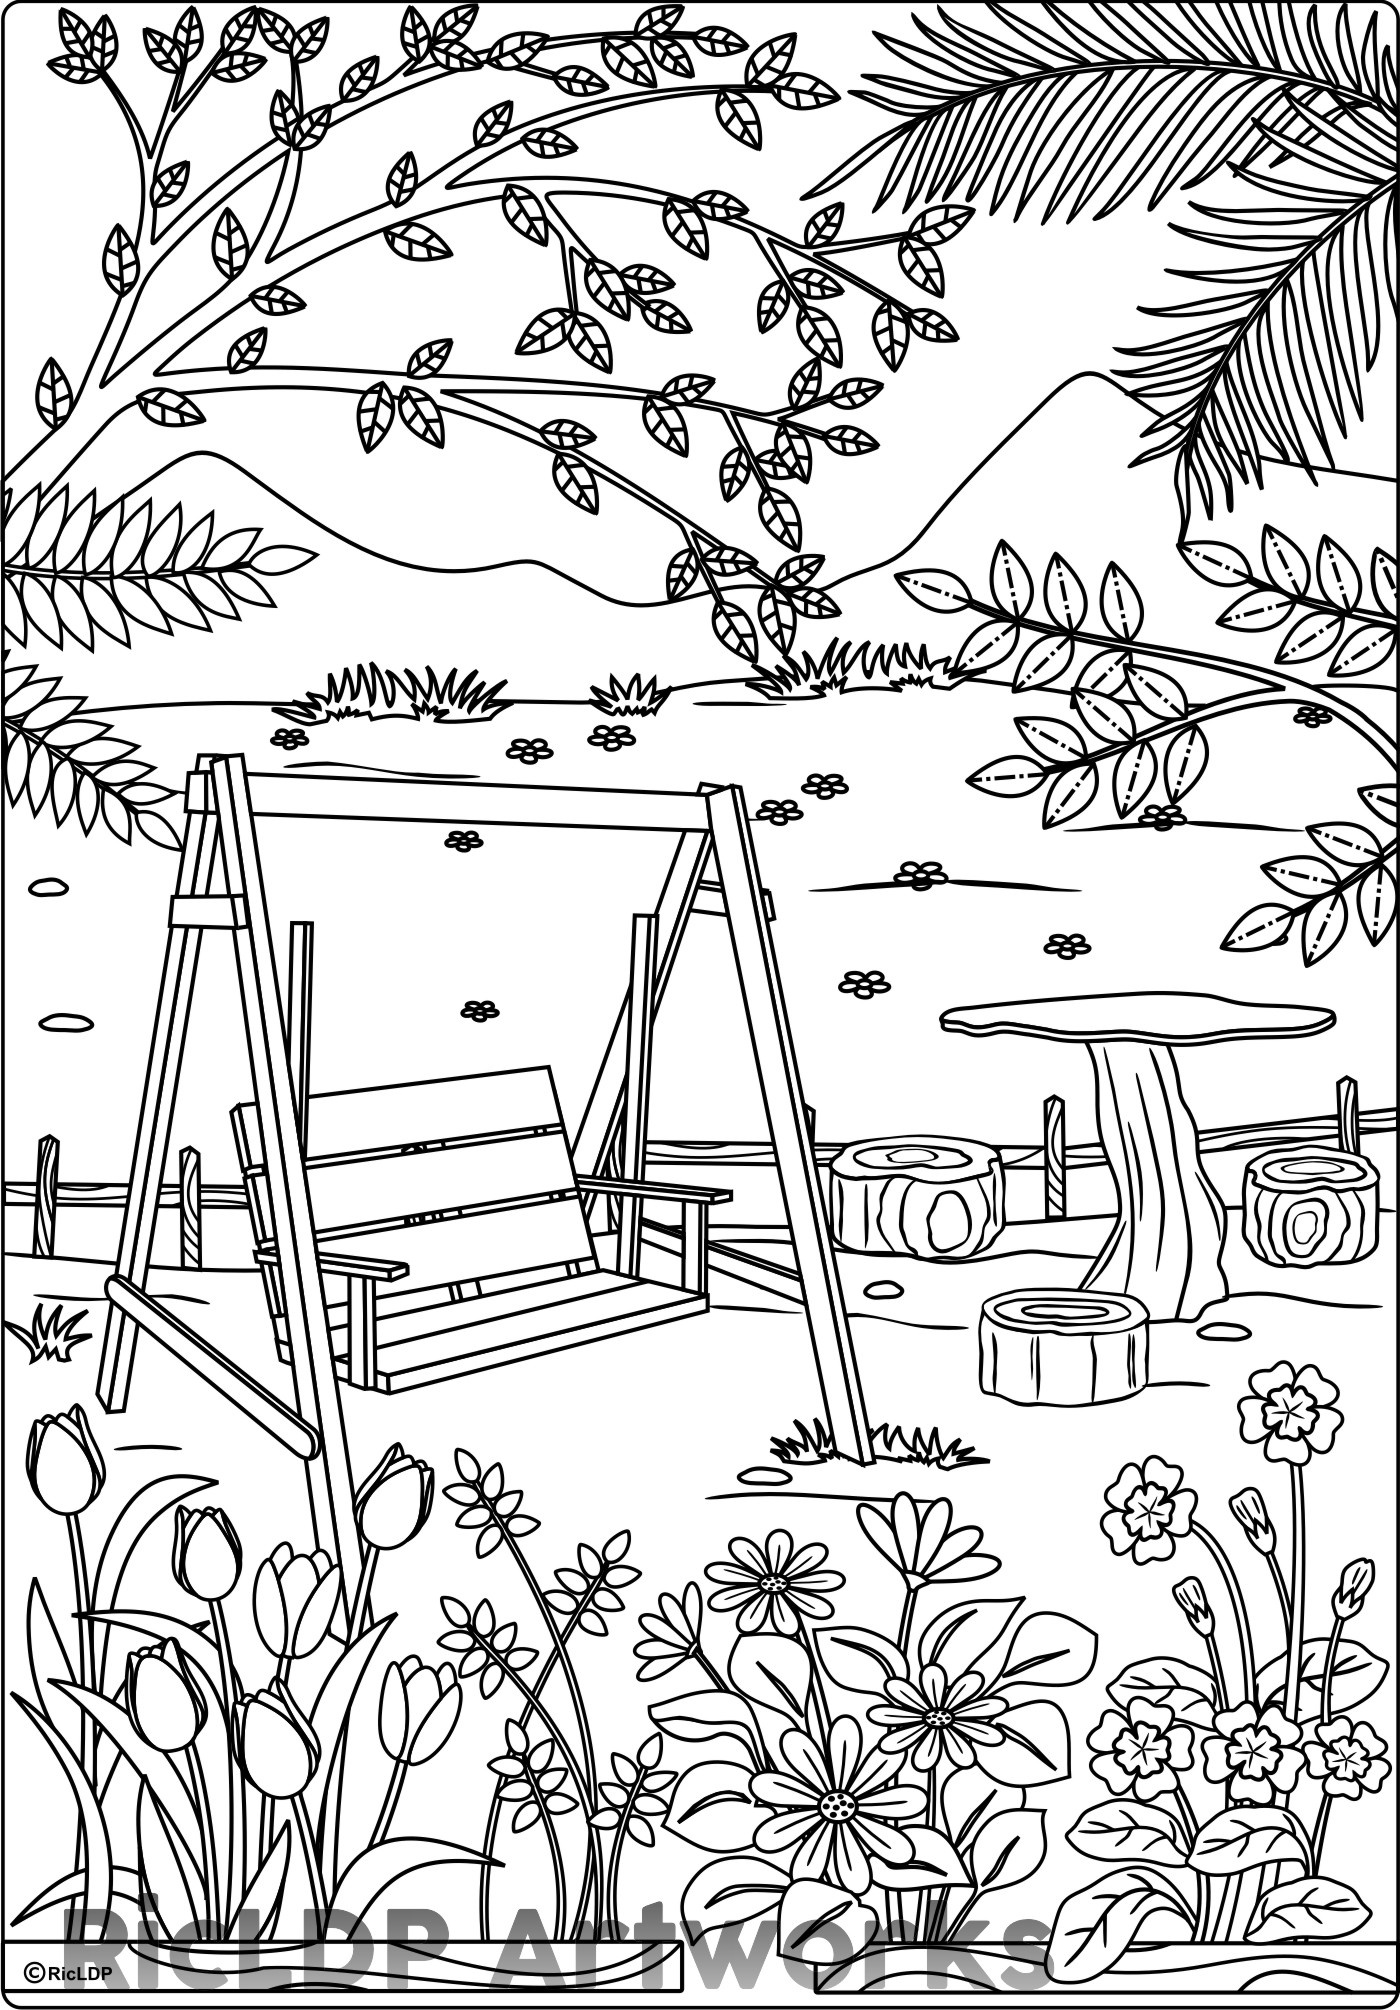 At the Park Coloring Page for Adults